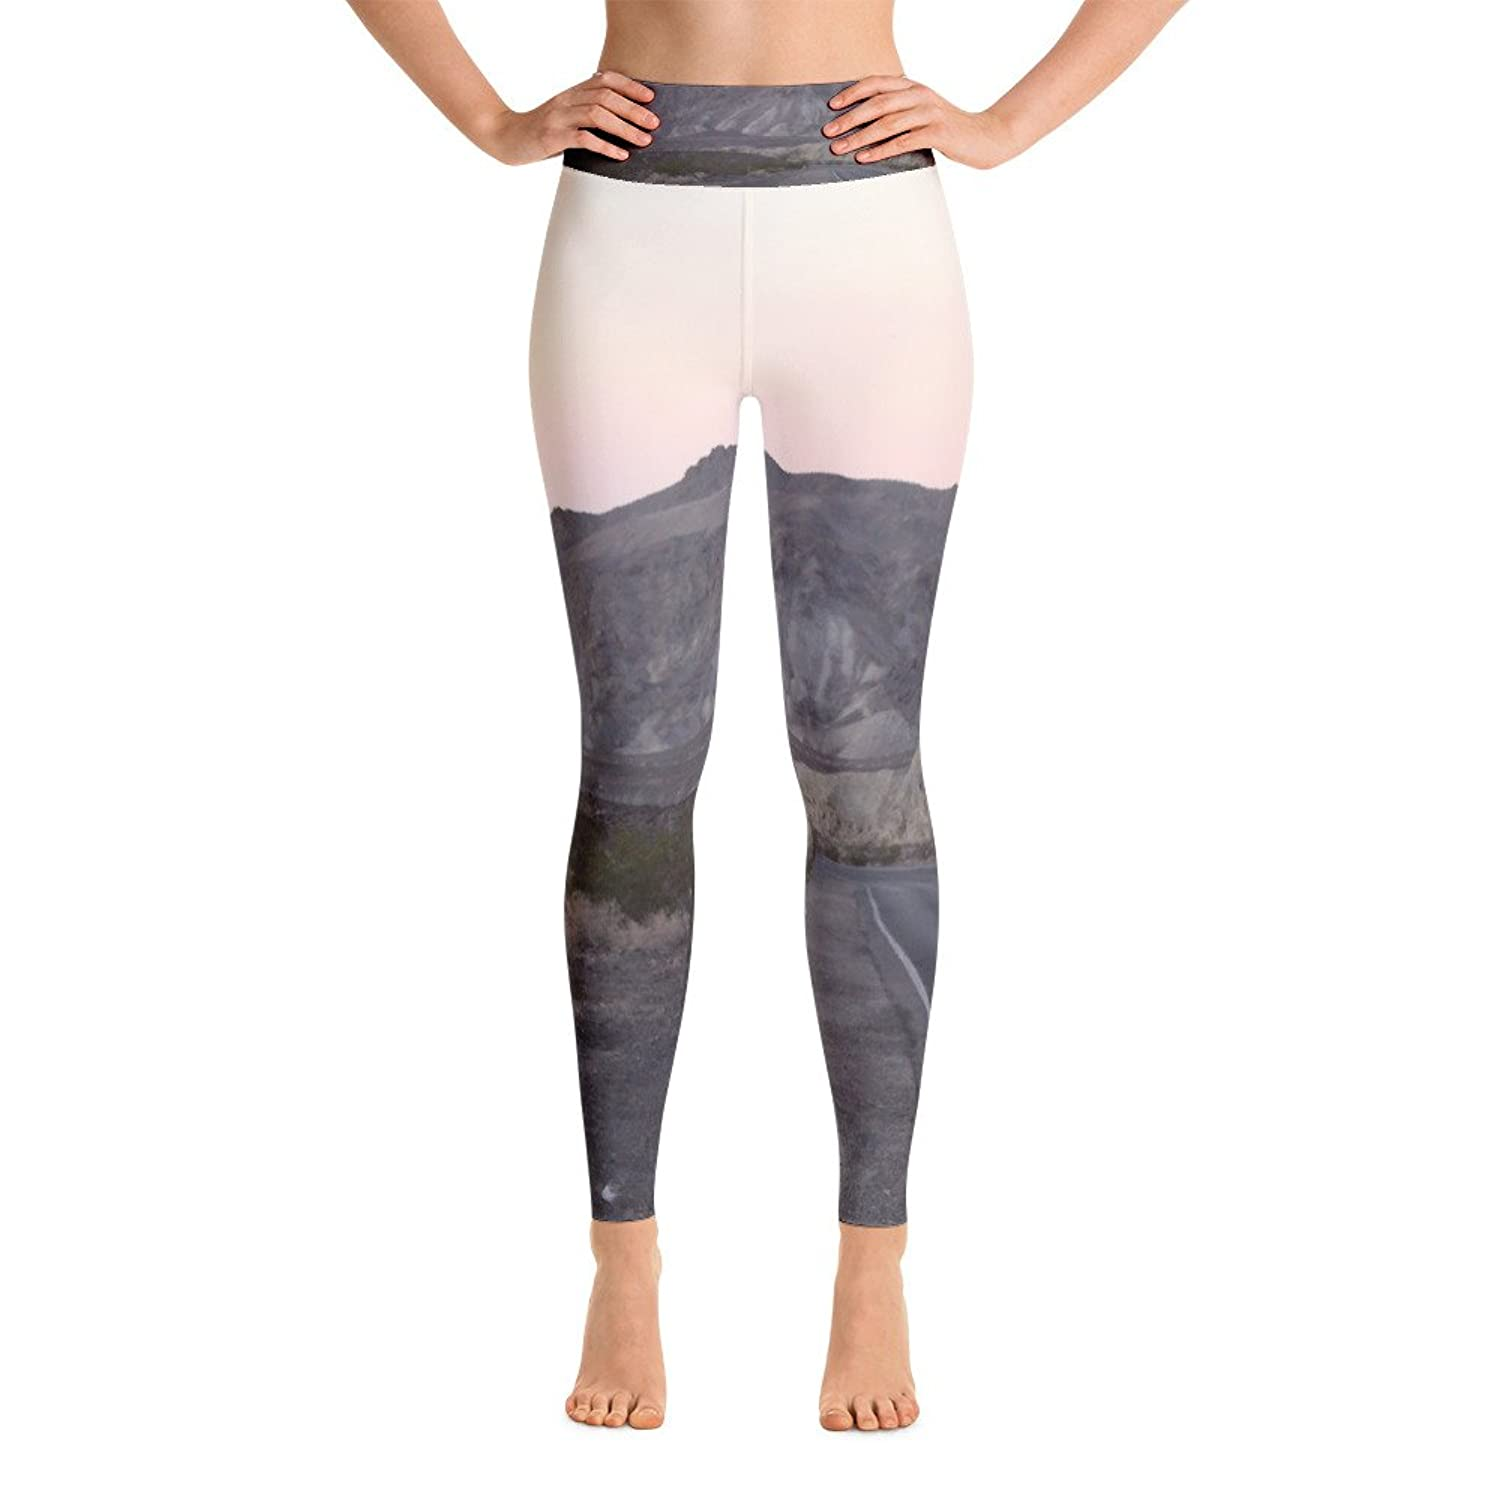 Mountain Inspired Yoga Leggings. Pants. Print. Nature. Mother Nature Inspired Clothing.